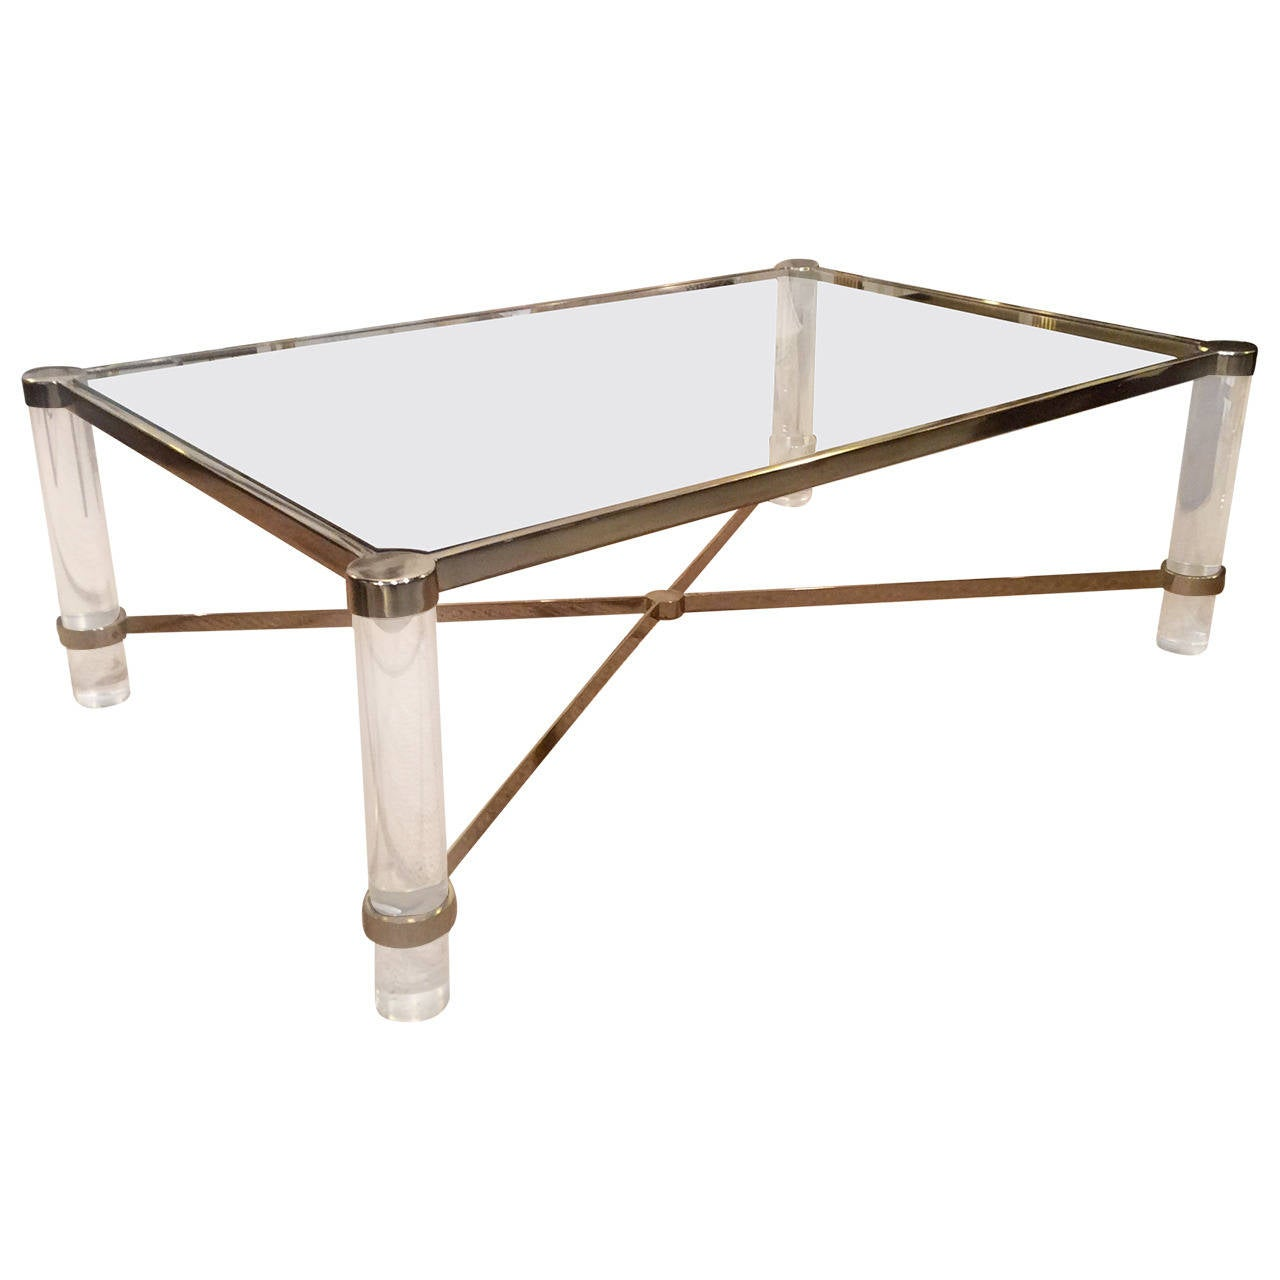 Lucite Coffee Table Mixed Metal Details In The Manner Of Karl Springer At 1stdibs